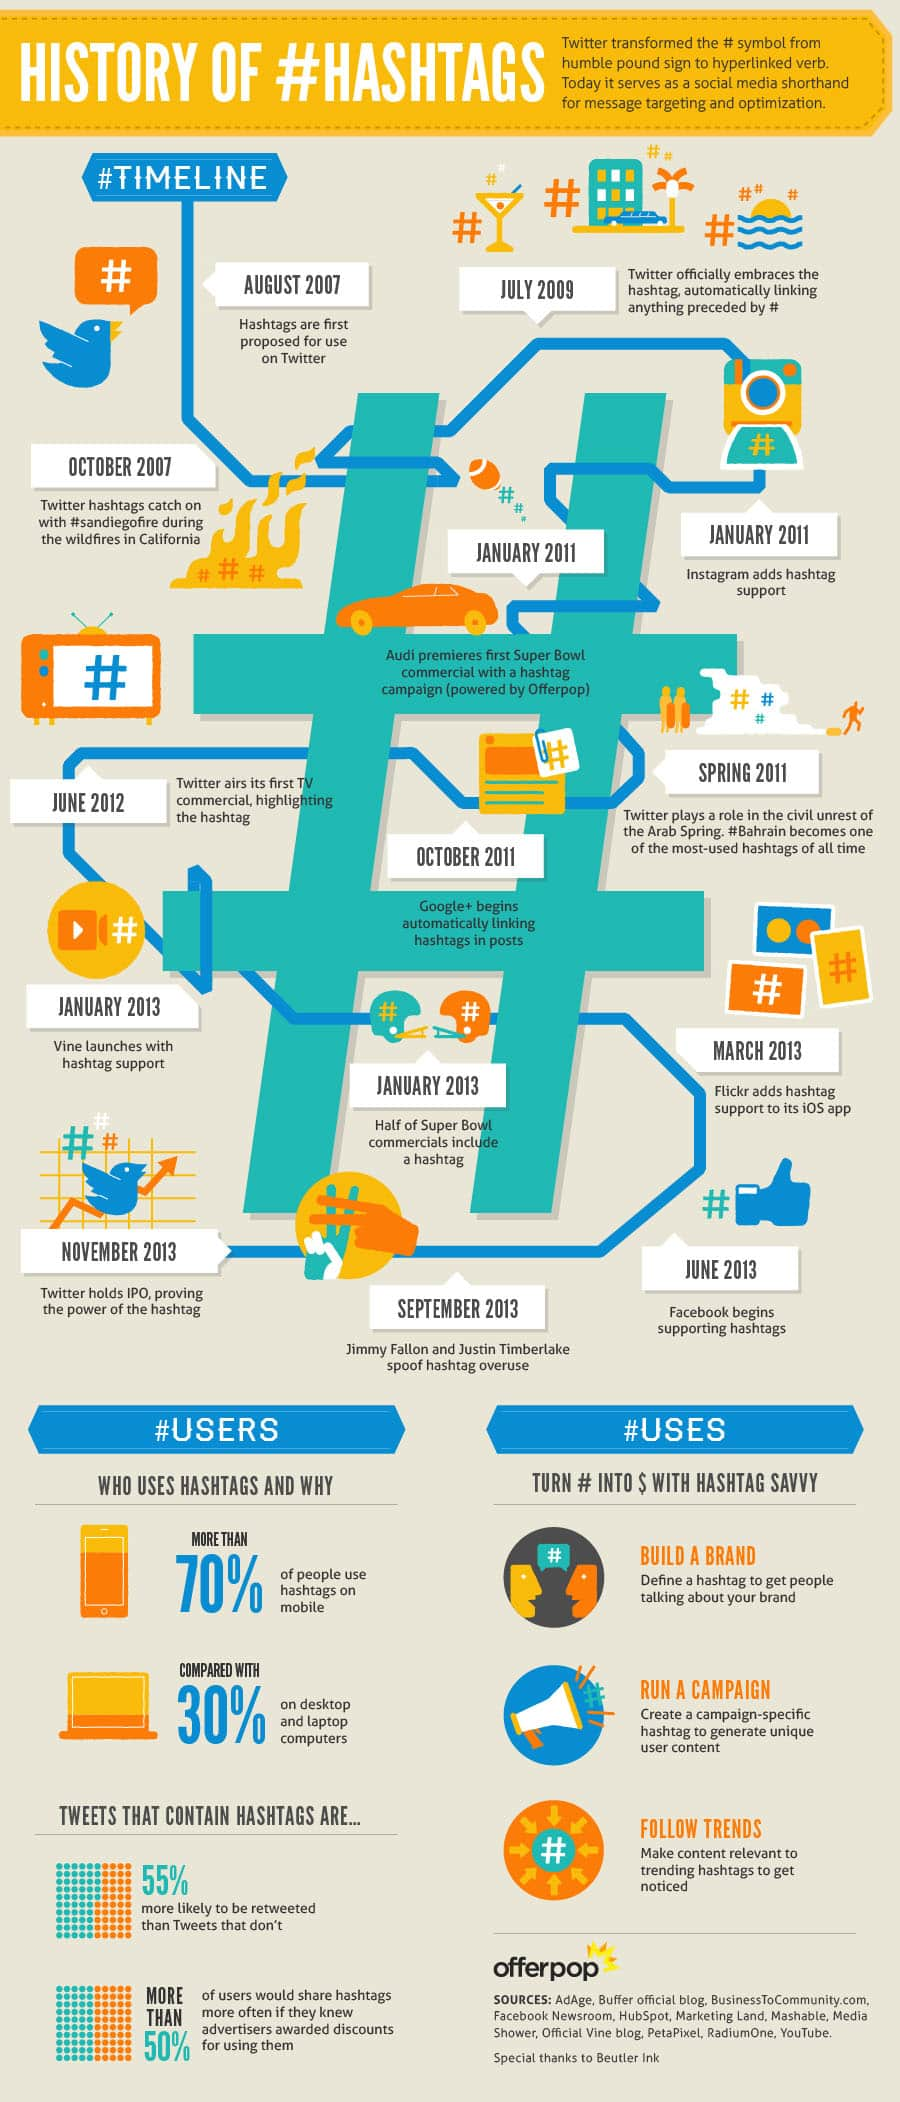 History of hashtags